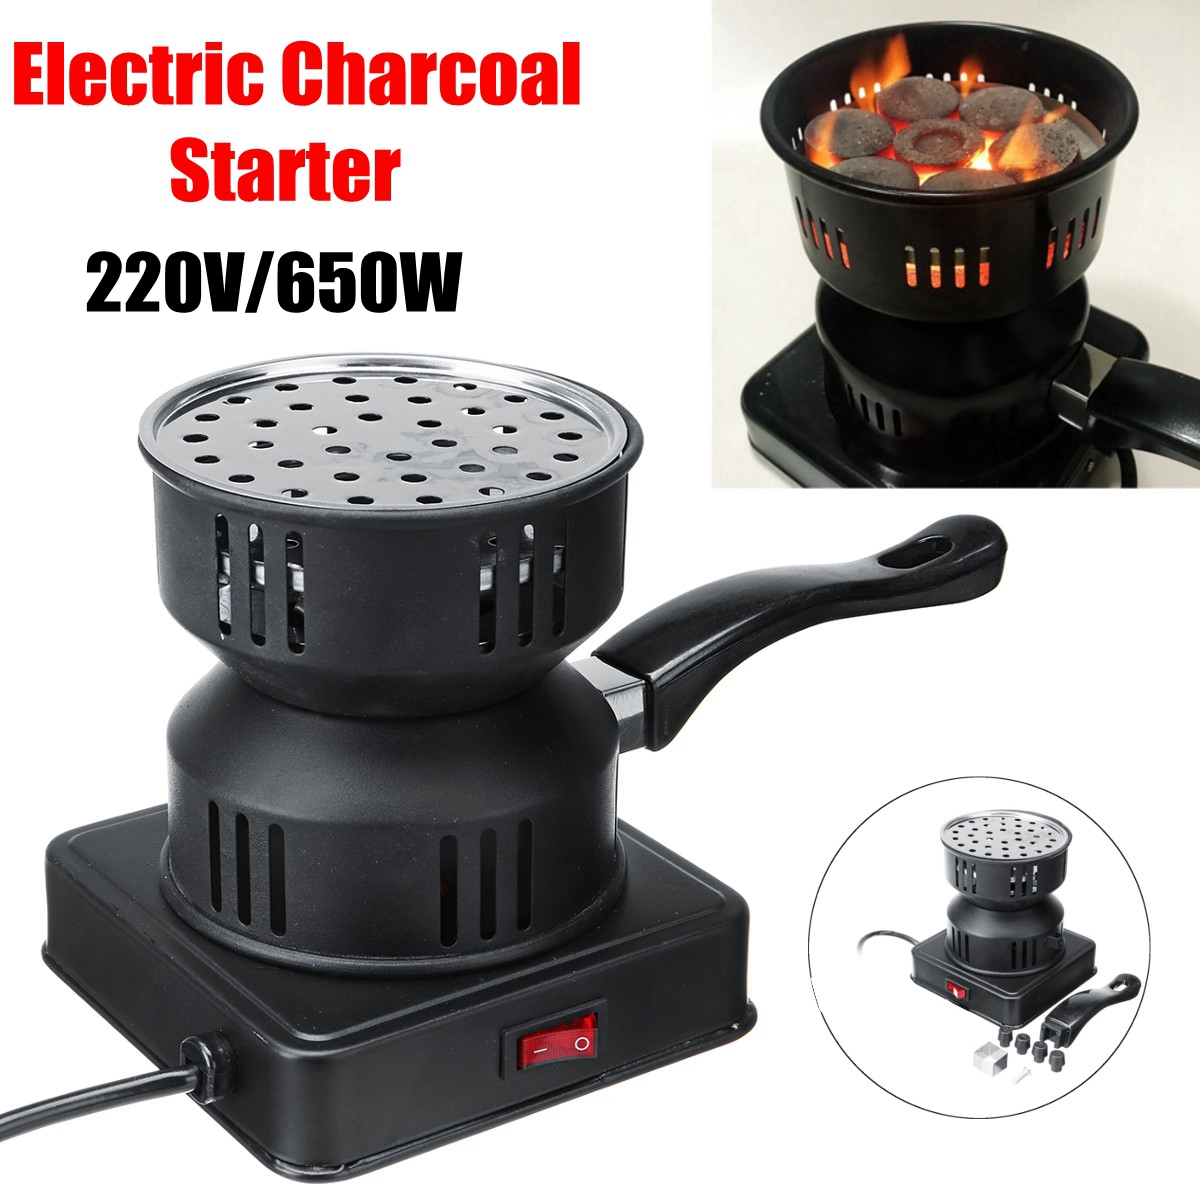 110V/220V 60HZ 650W Arabian Shisha Charcoal Burner Heater Stove Electric Camping Cooking Stove